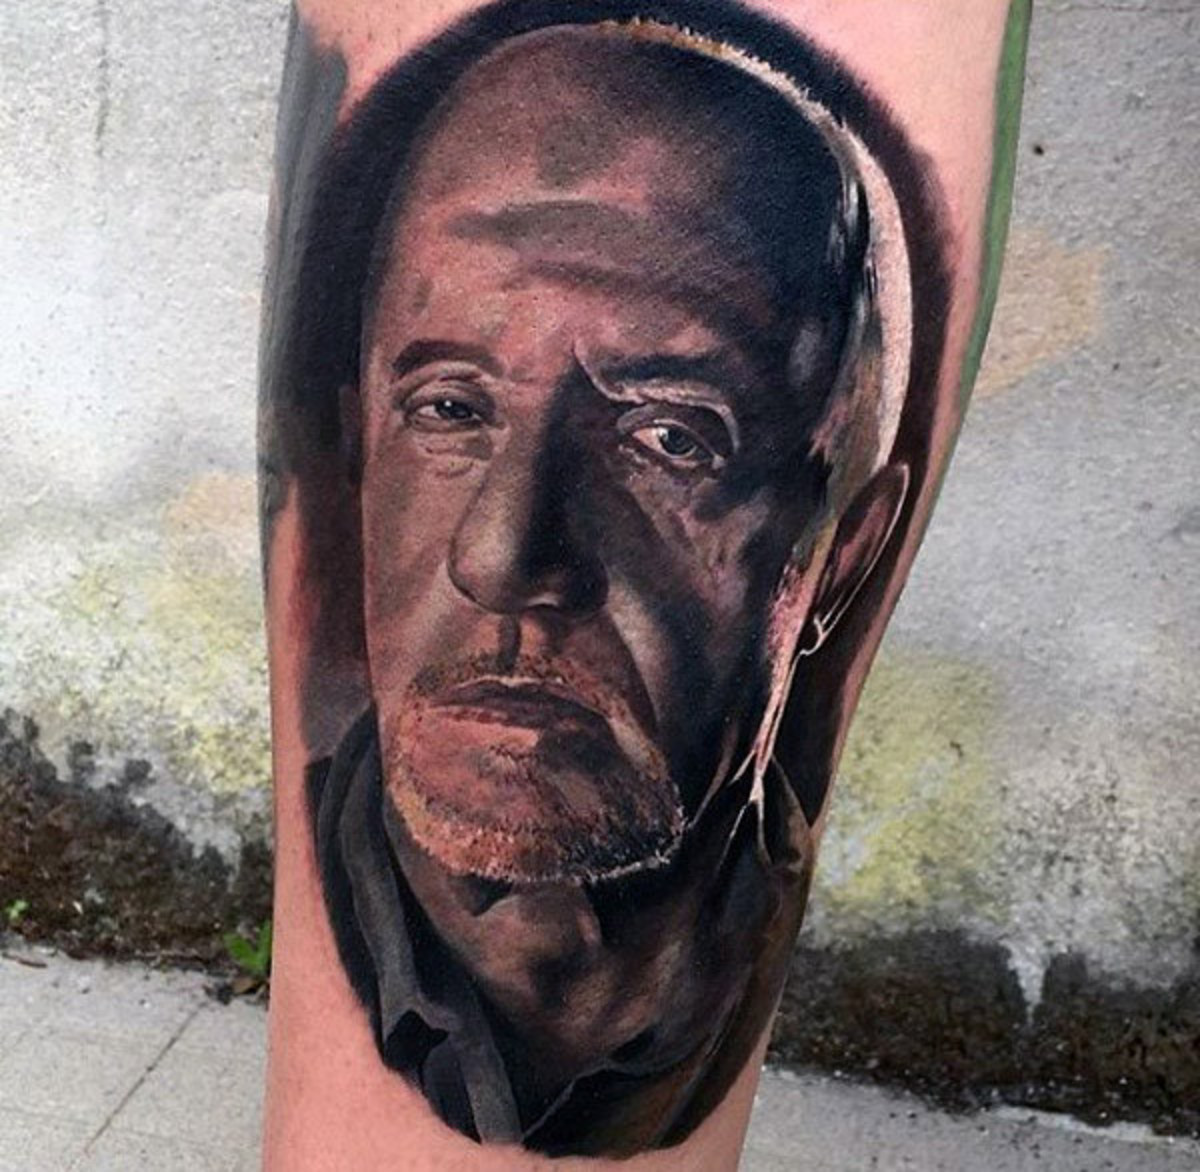 mens-breaking-bad-portrait-tattoo-ideas